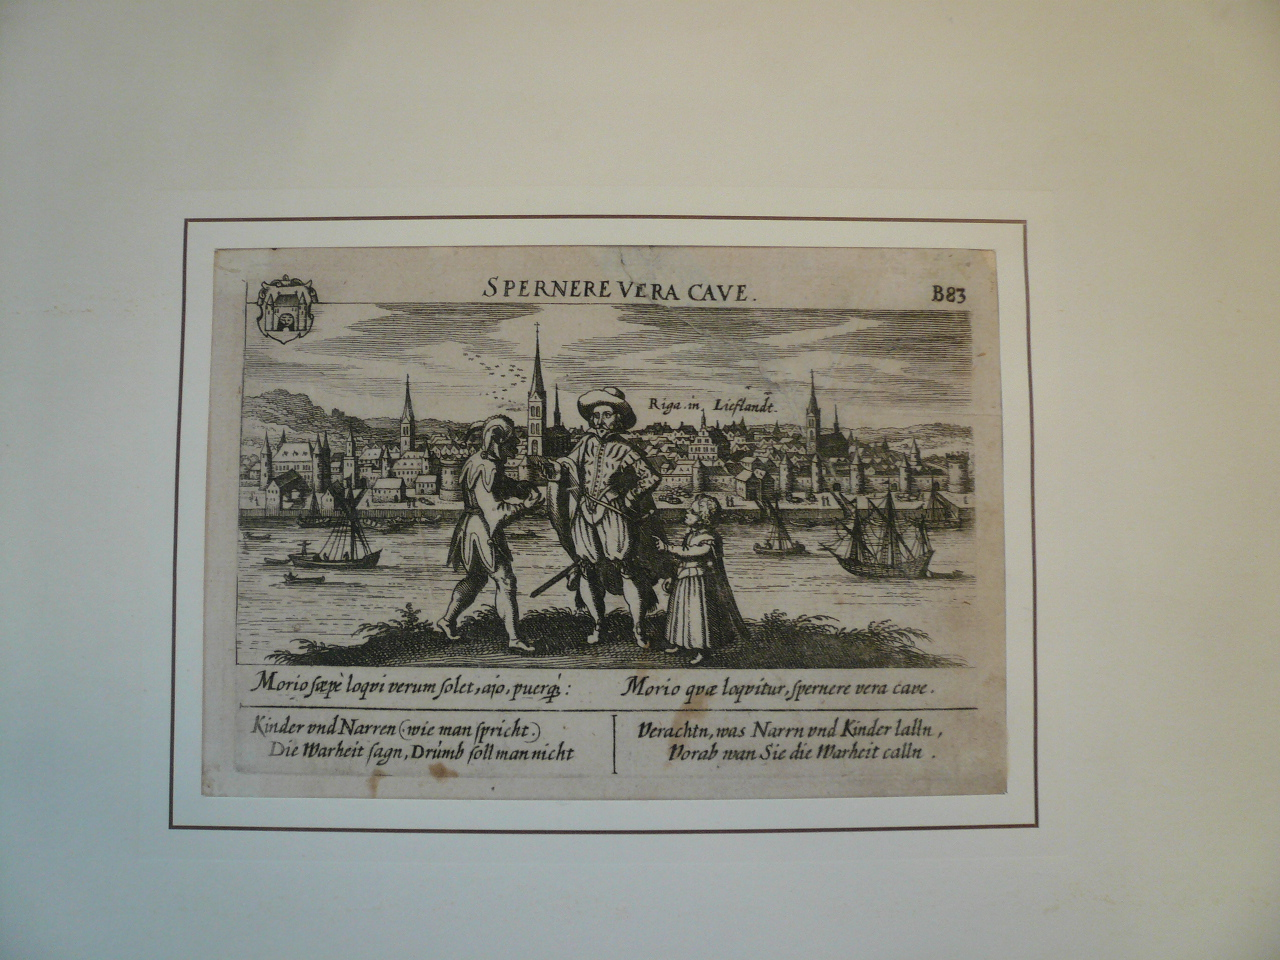 Riga, anno 1630, Meisner/Kieser Copperengraving, edited anno 163